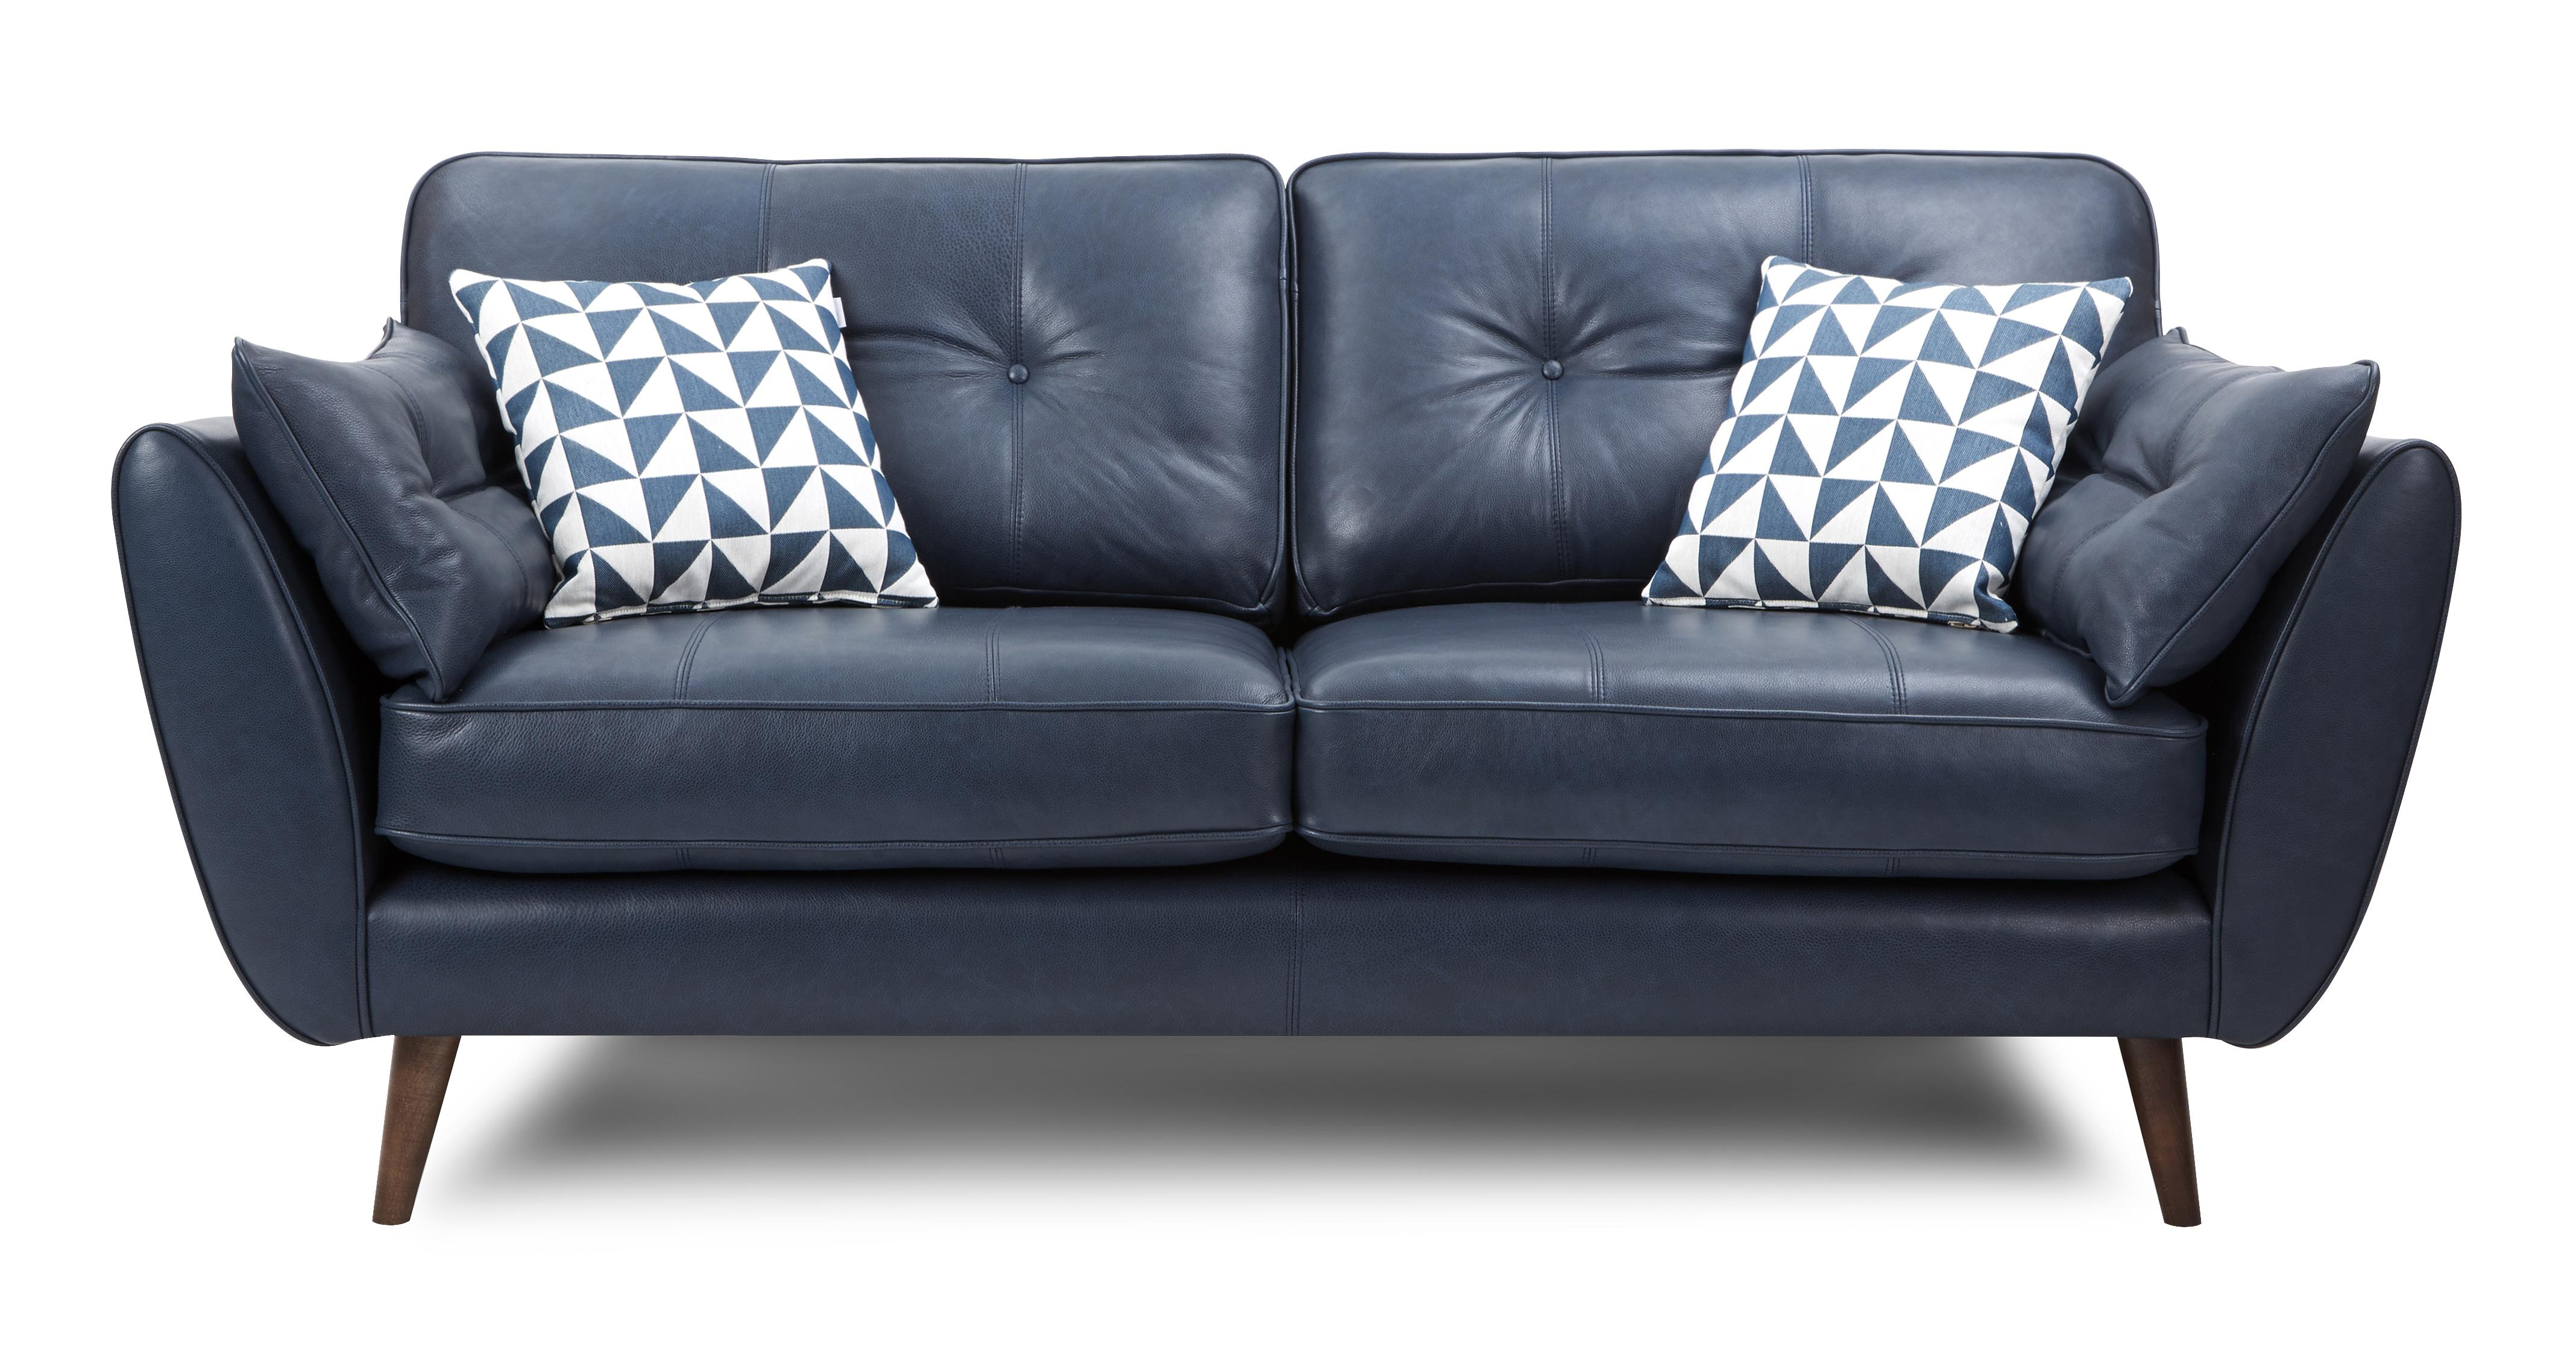 leather sofas dfs sofa beds for cheap sales and deals blues